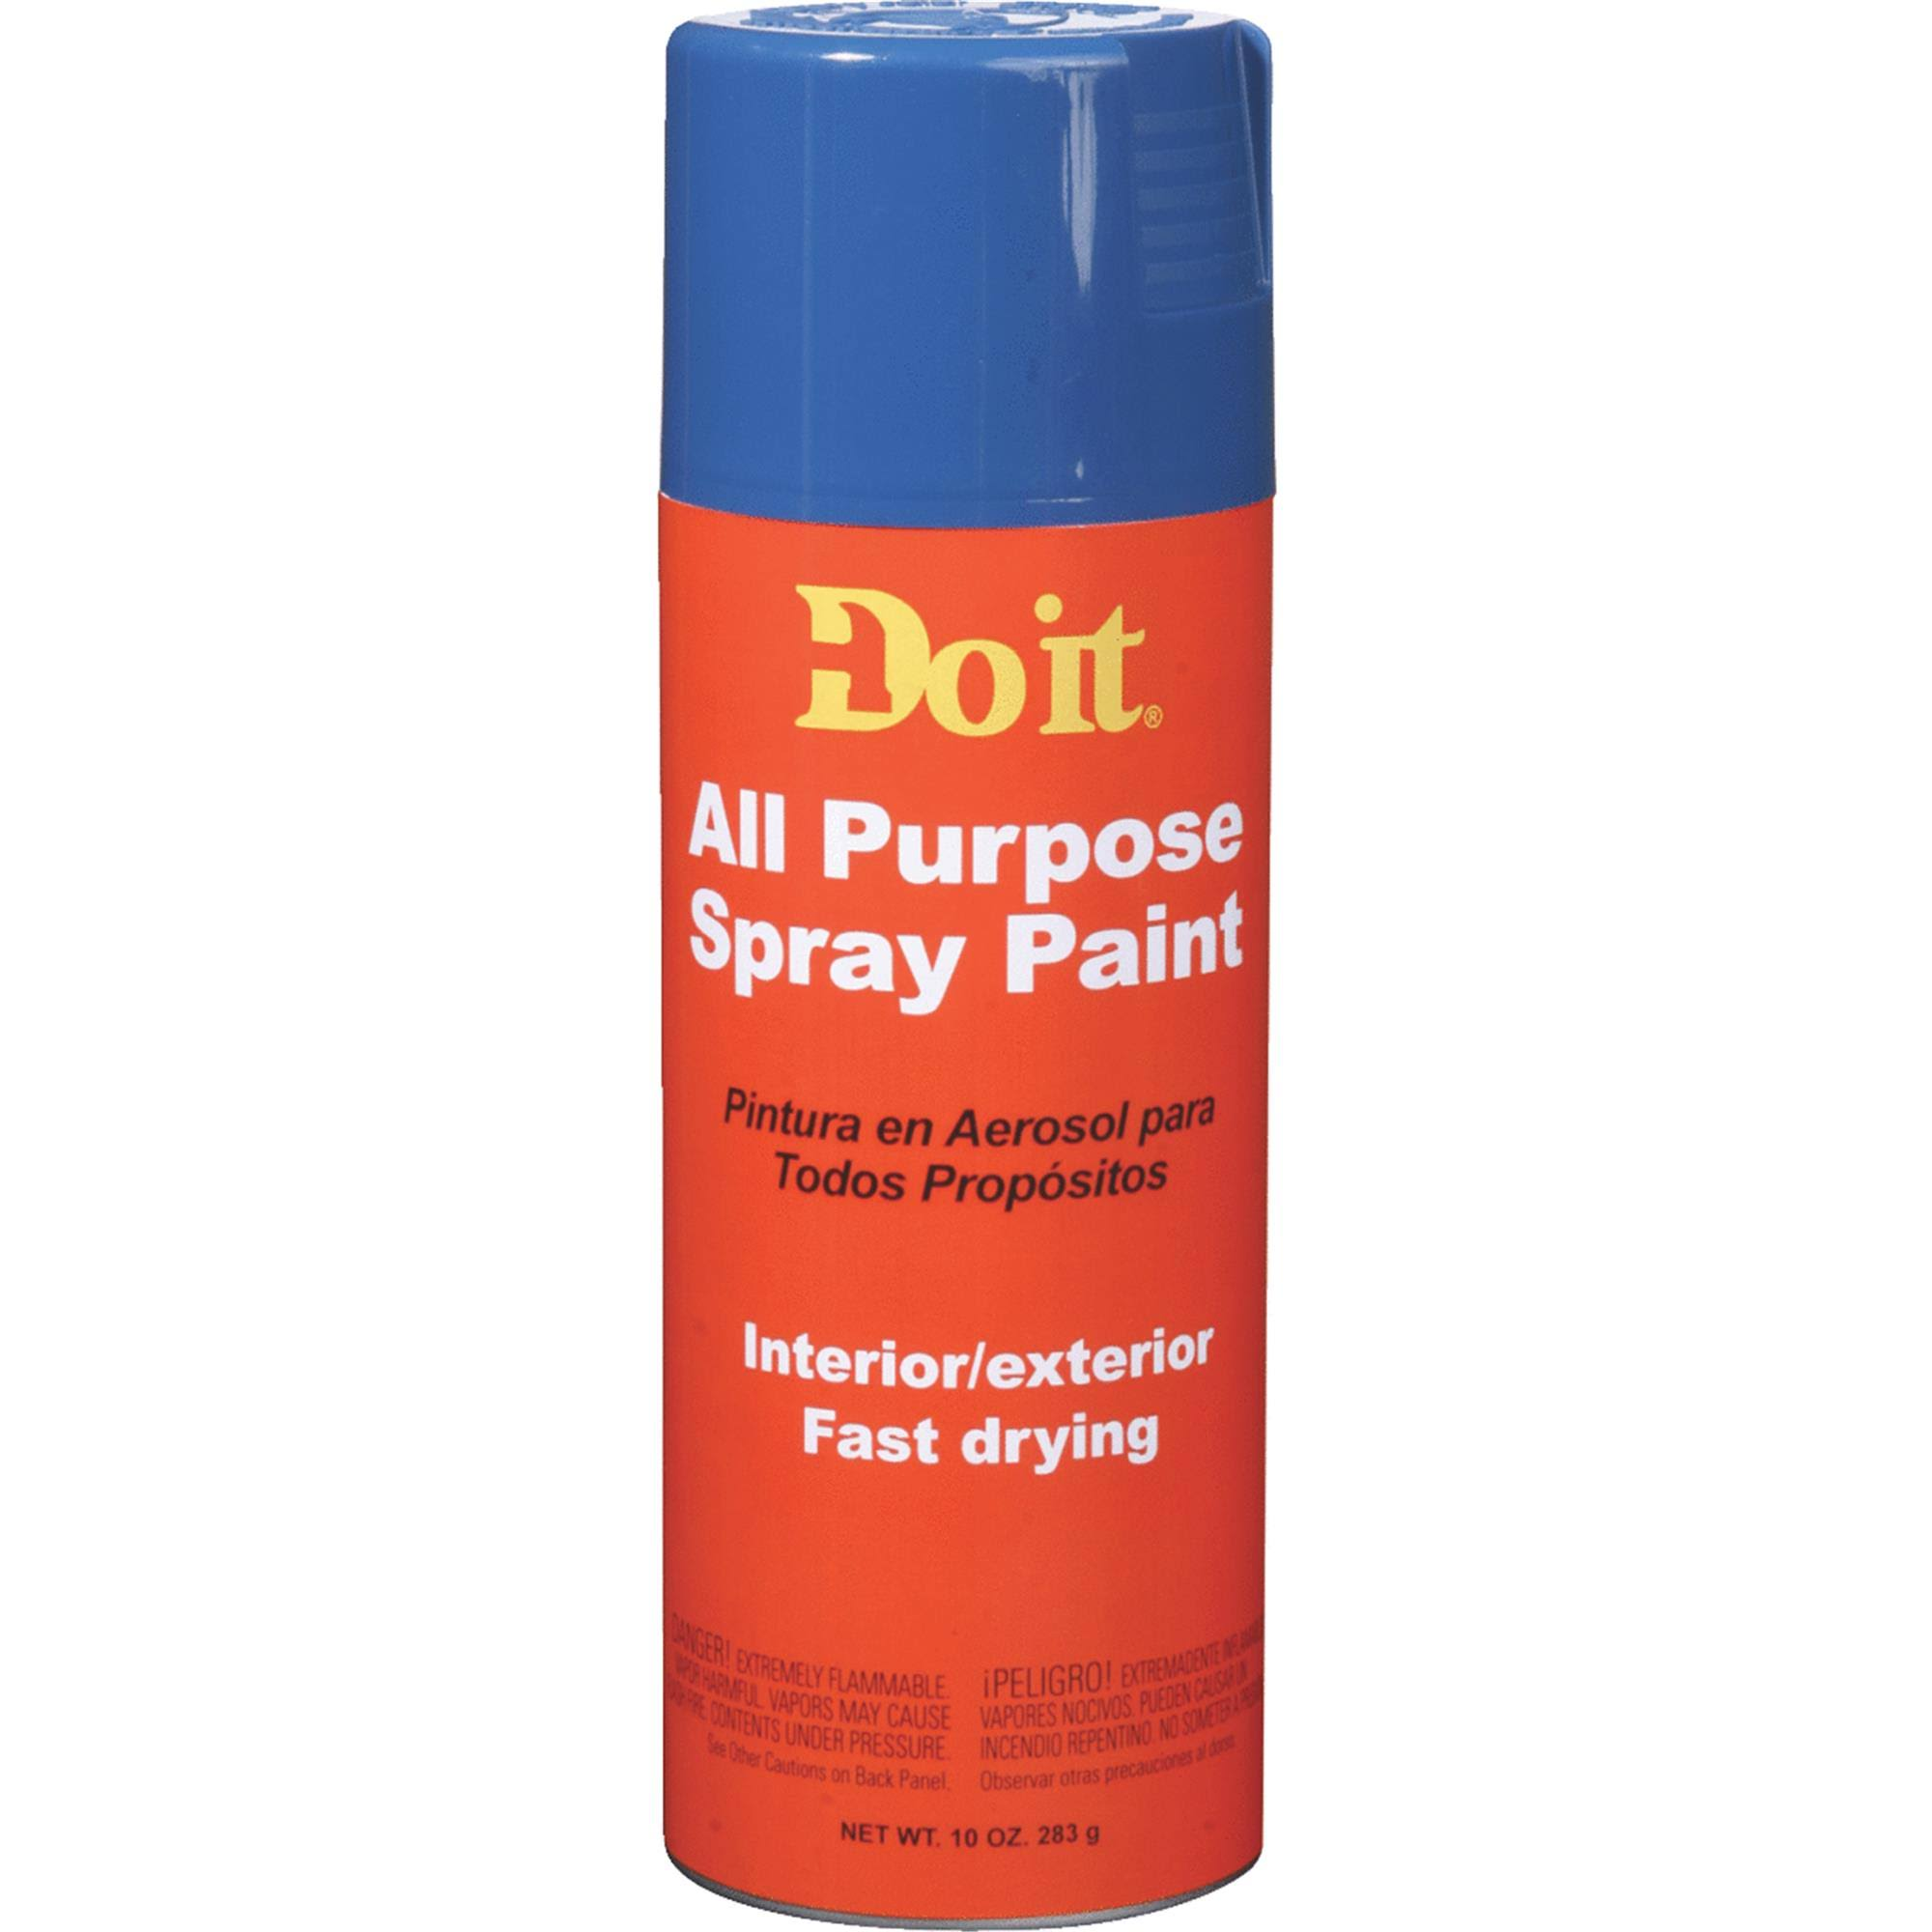 Do It All Purpose Spray Paint - Blue, 10oz